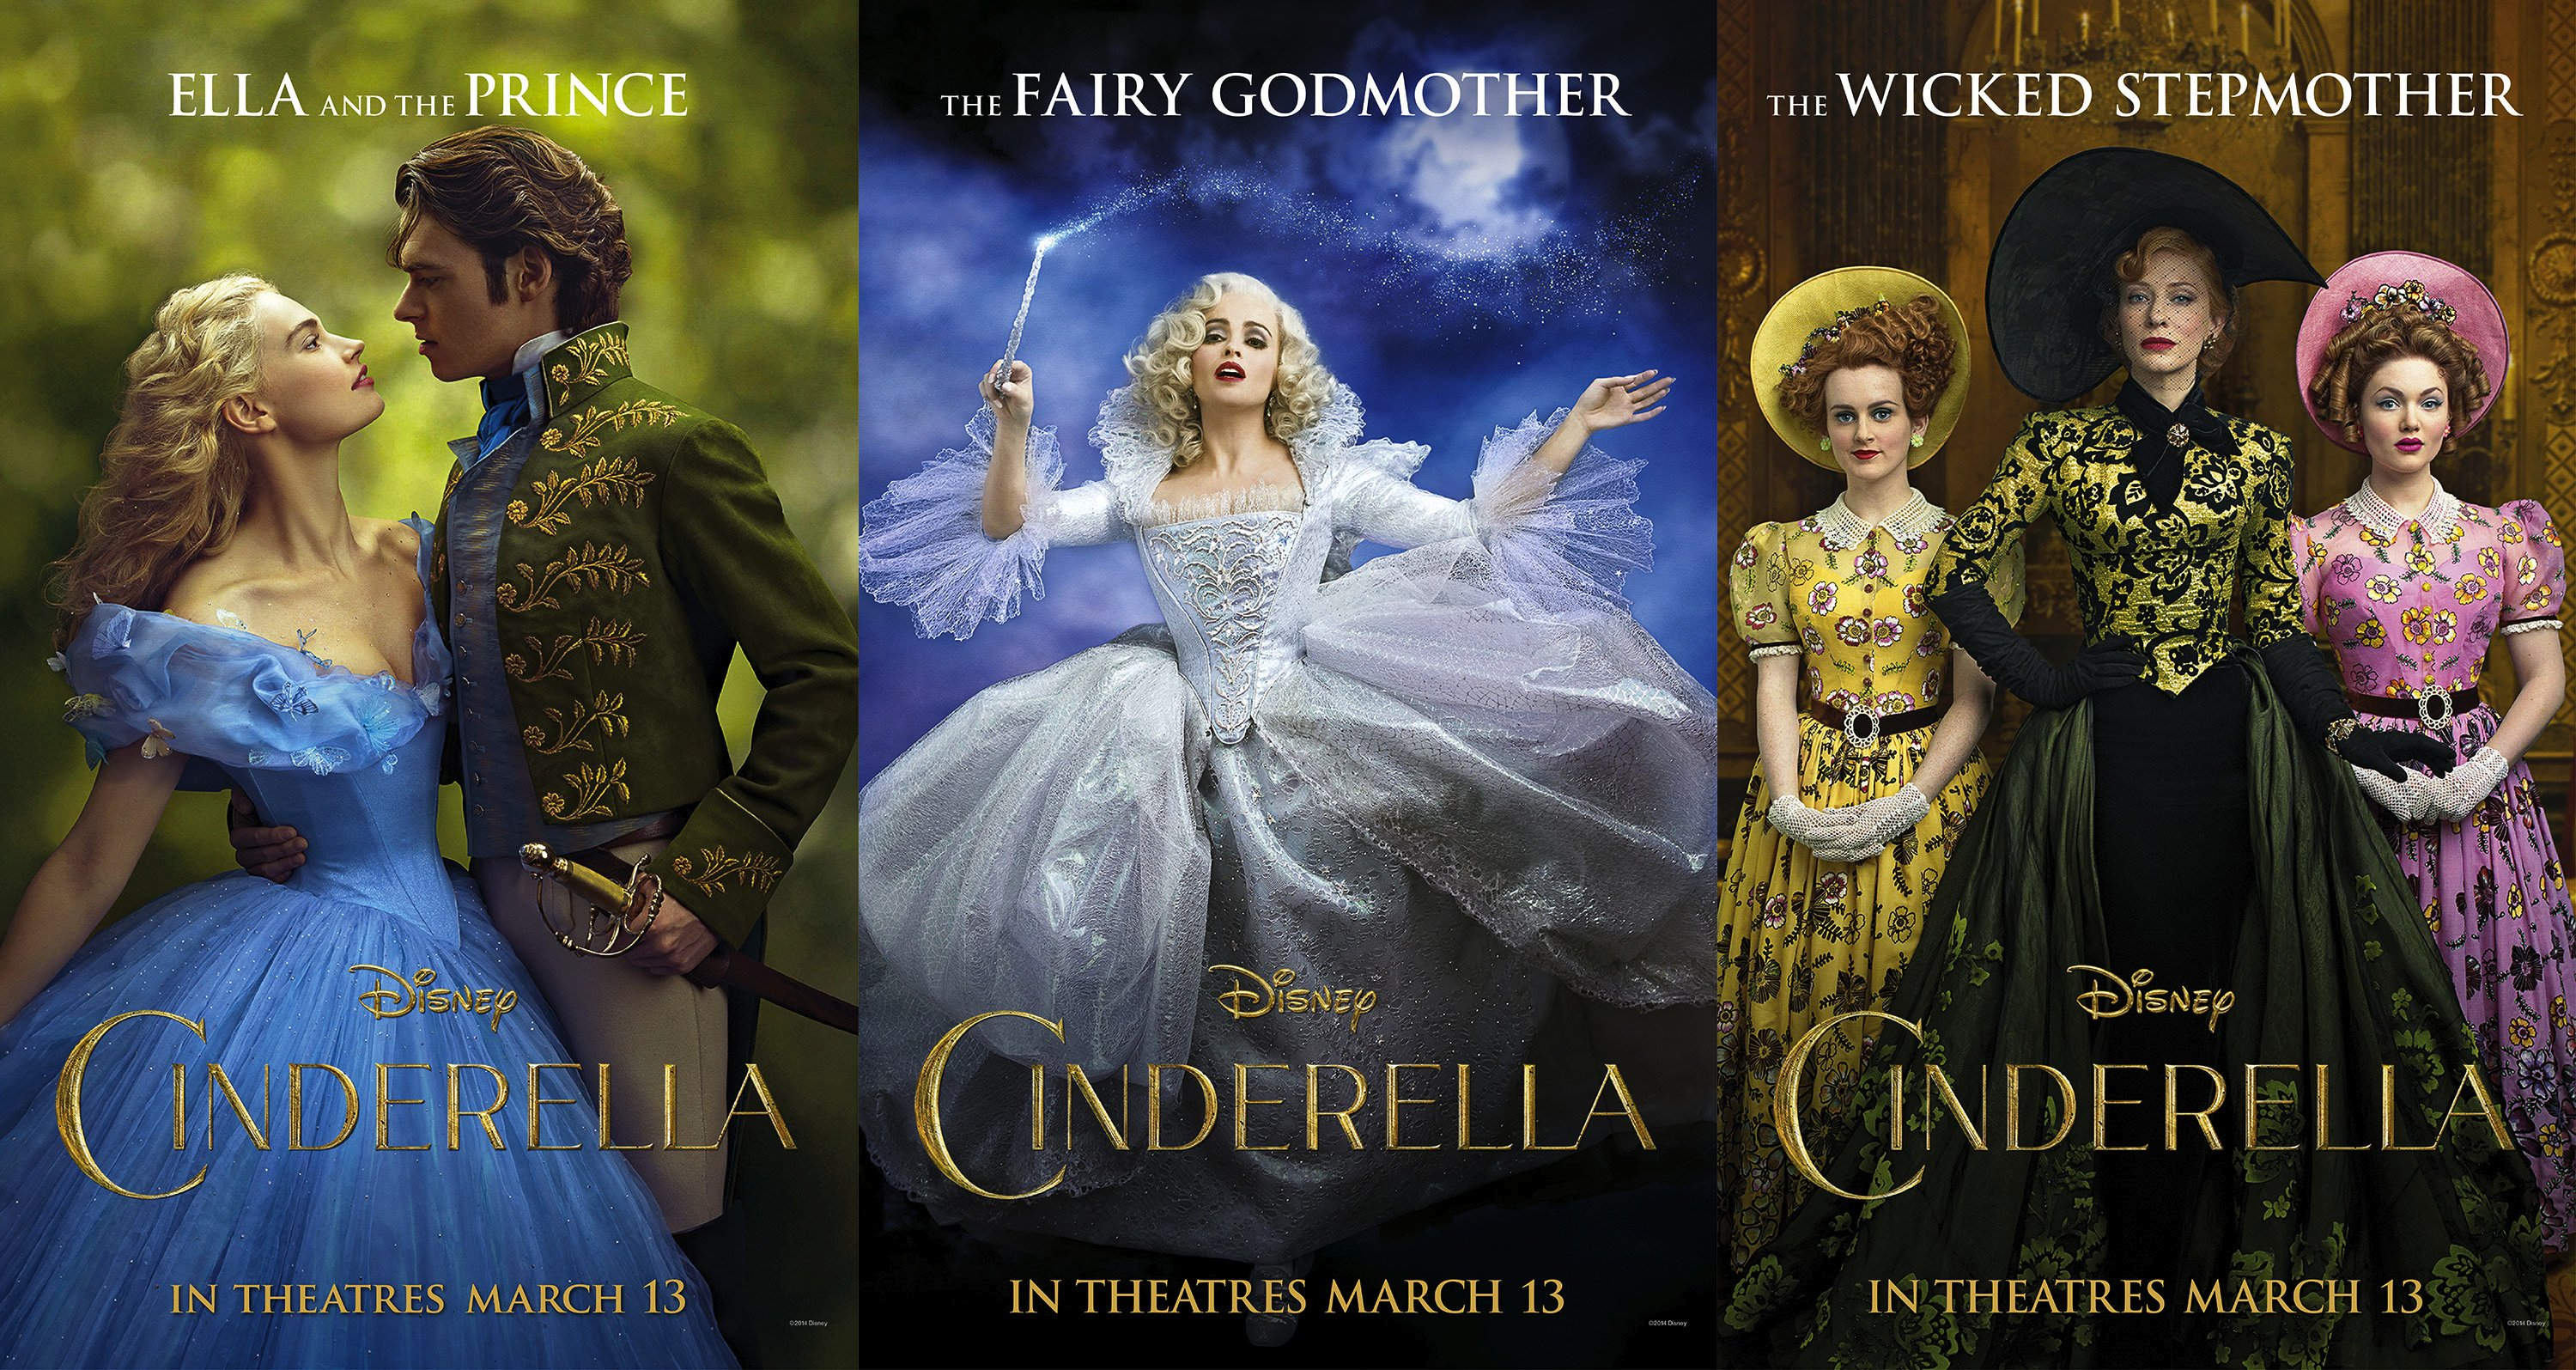 an analysis of characters and their actions in the fairy tale cinderella Review and analysis of the cinderella feature inspired by the classic fairy tale cinderella  her cruel and evil character after her actions.